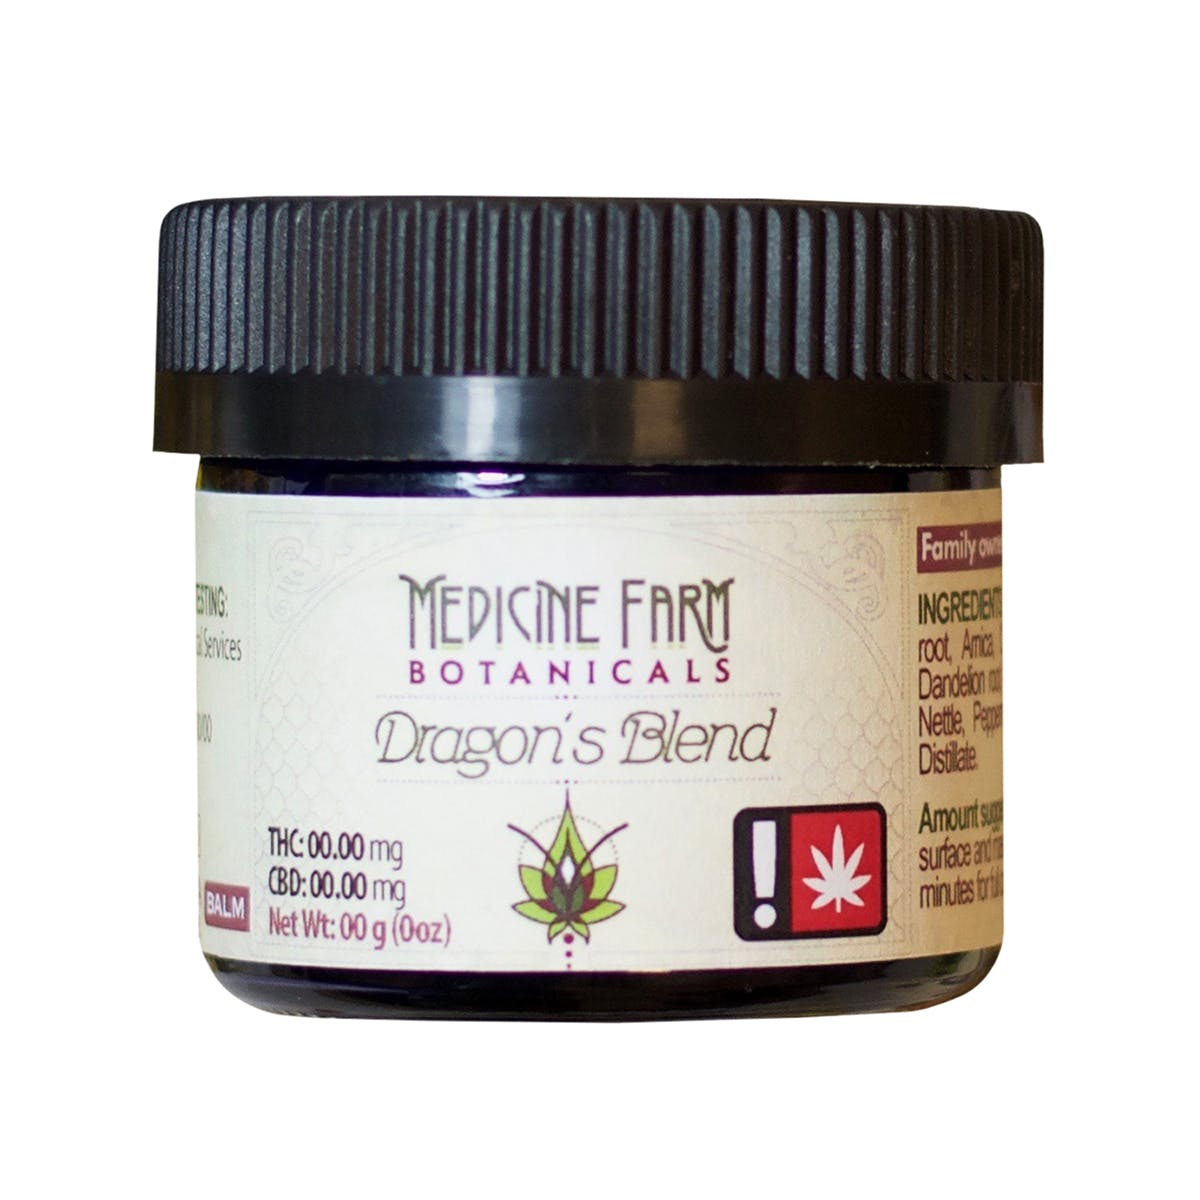 marijuana-dispensaries-greeley-gallery-in-portland-dragona-c2-80-c2-99s-blend-balm-2oz